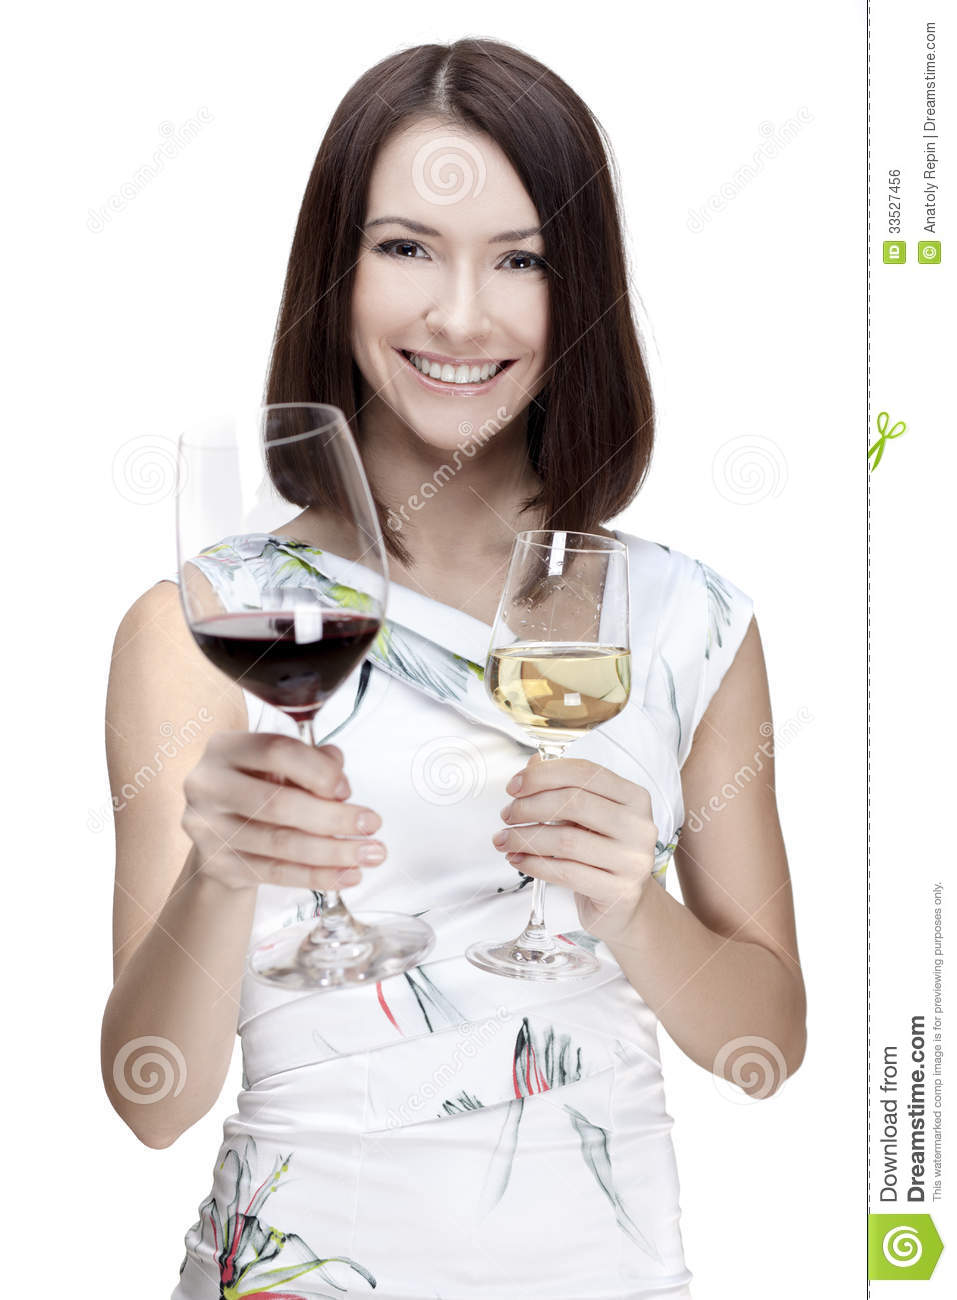 Woman Holding Wine Glass Royalty Free Stock Image - Image ...